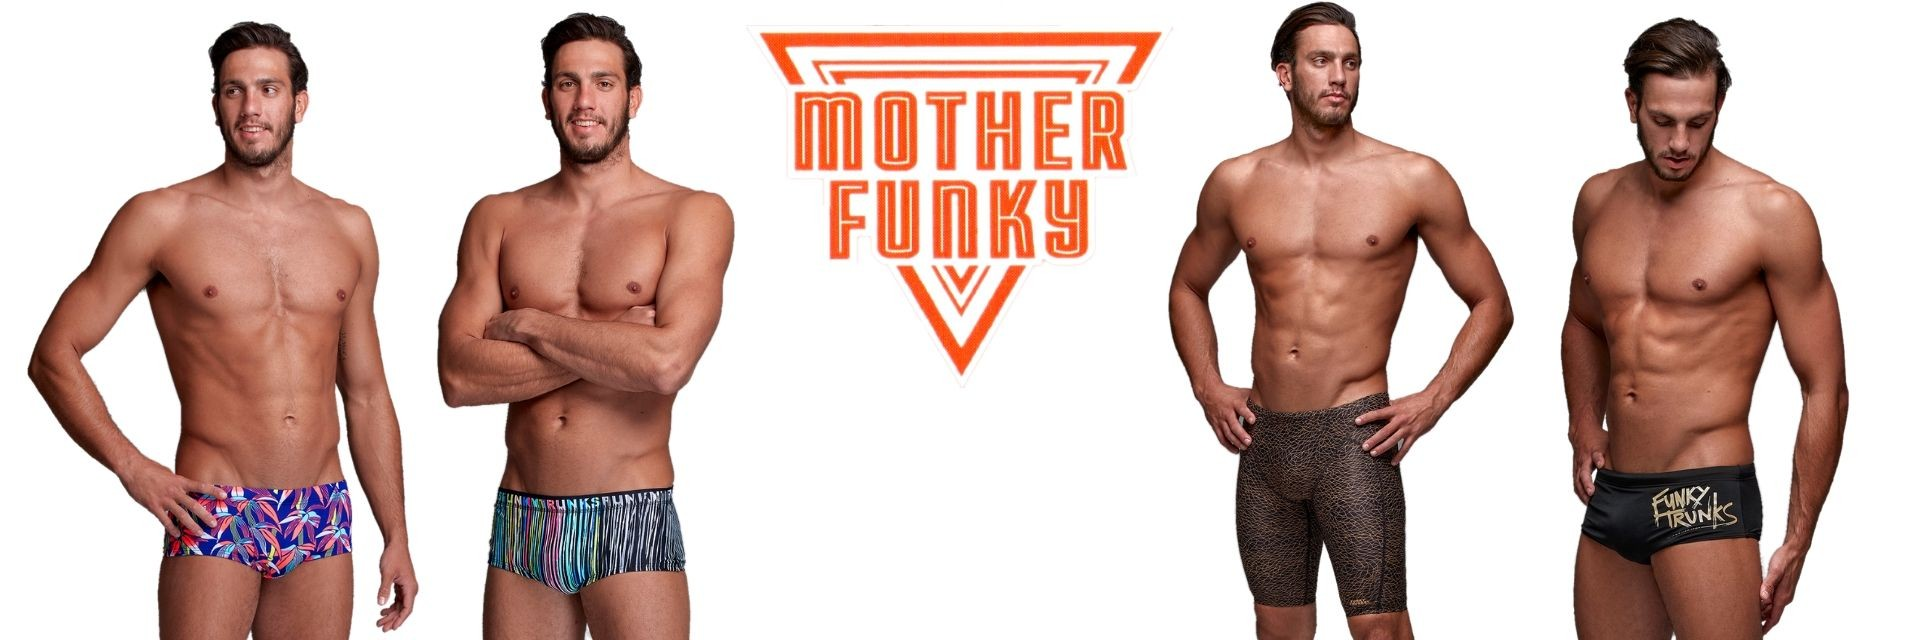 Nowa kolekcja Mother Funky od Funky Trunks!